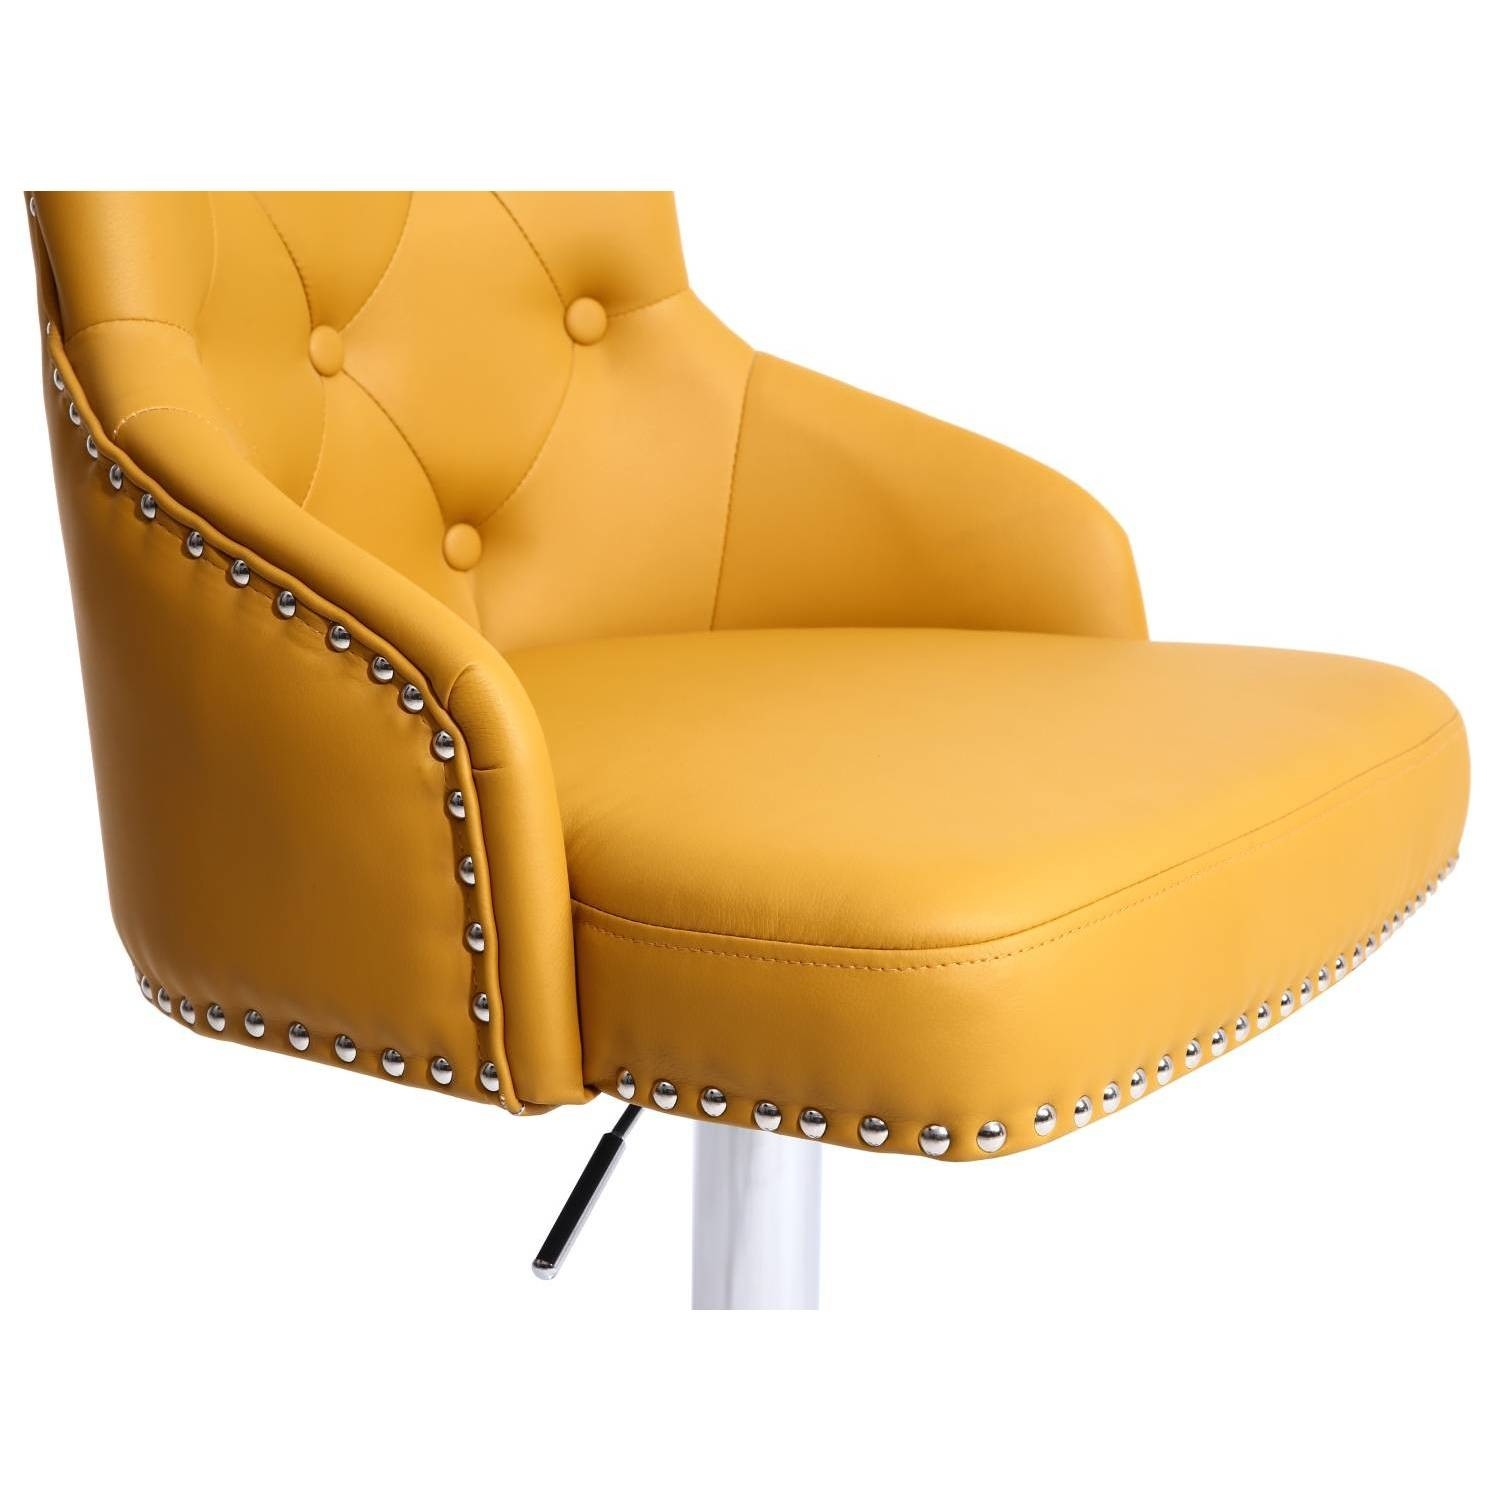 Wondrous Adjustable Bar Stool In Yellow Faux Leather With Silver Studs Rocco Gmtry Best Dining Table And Chair Ideas Images Gmtryco